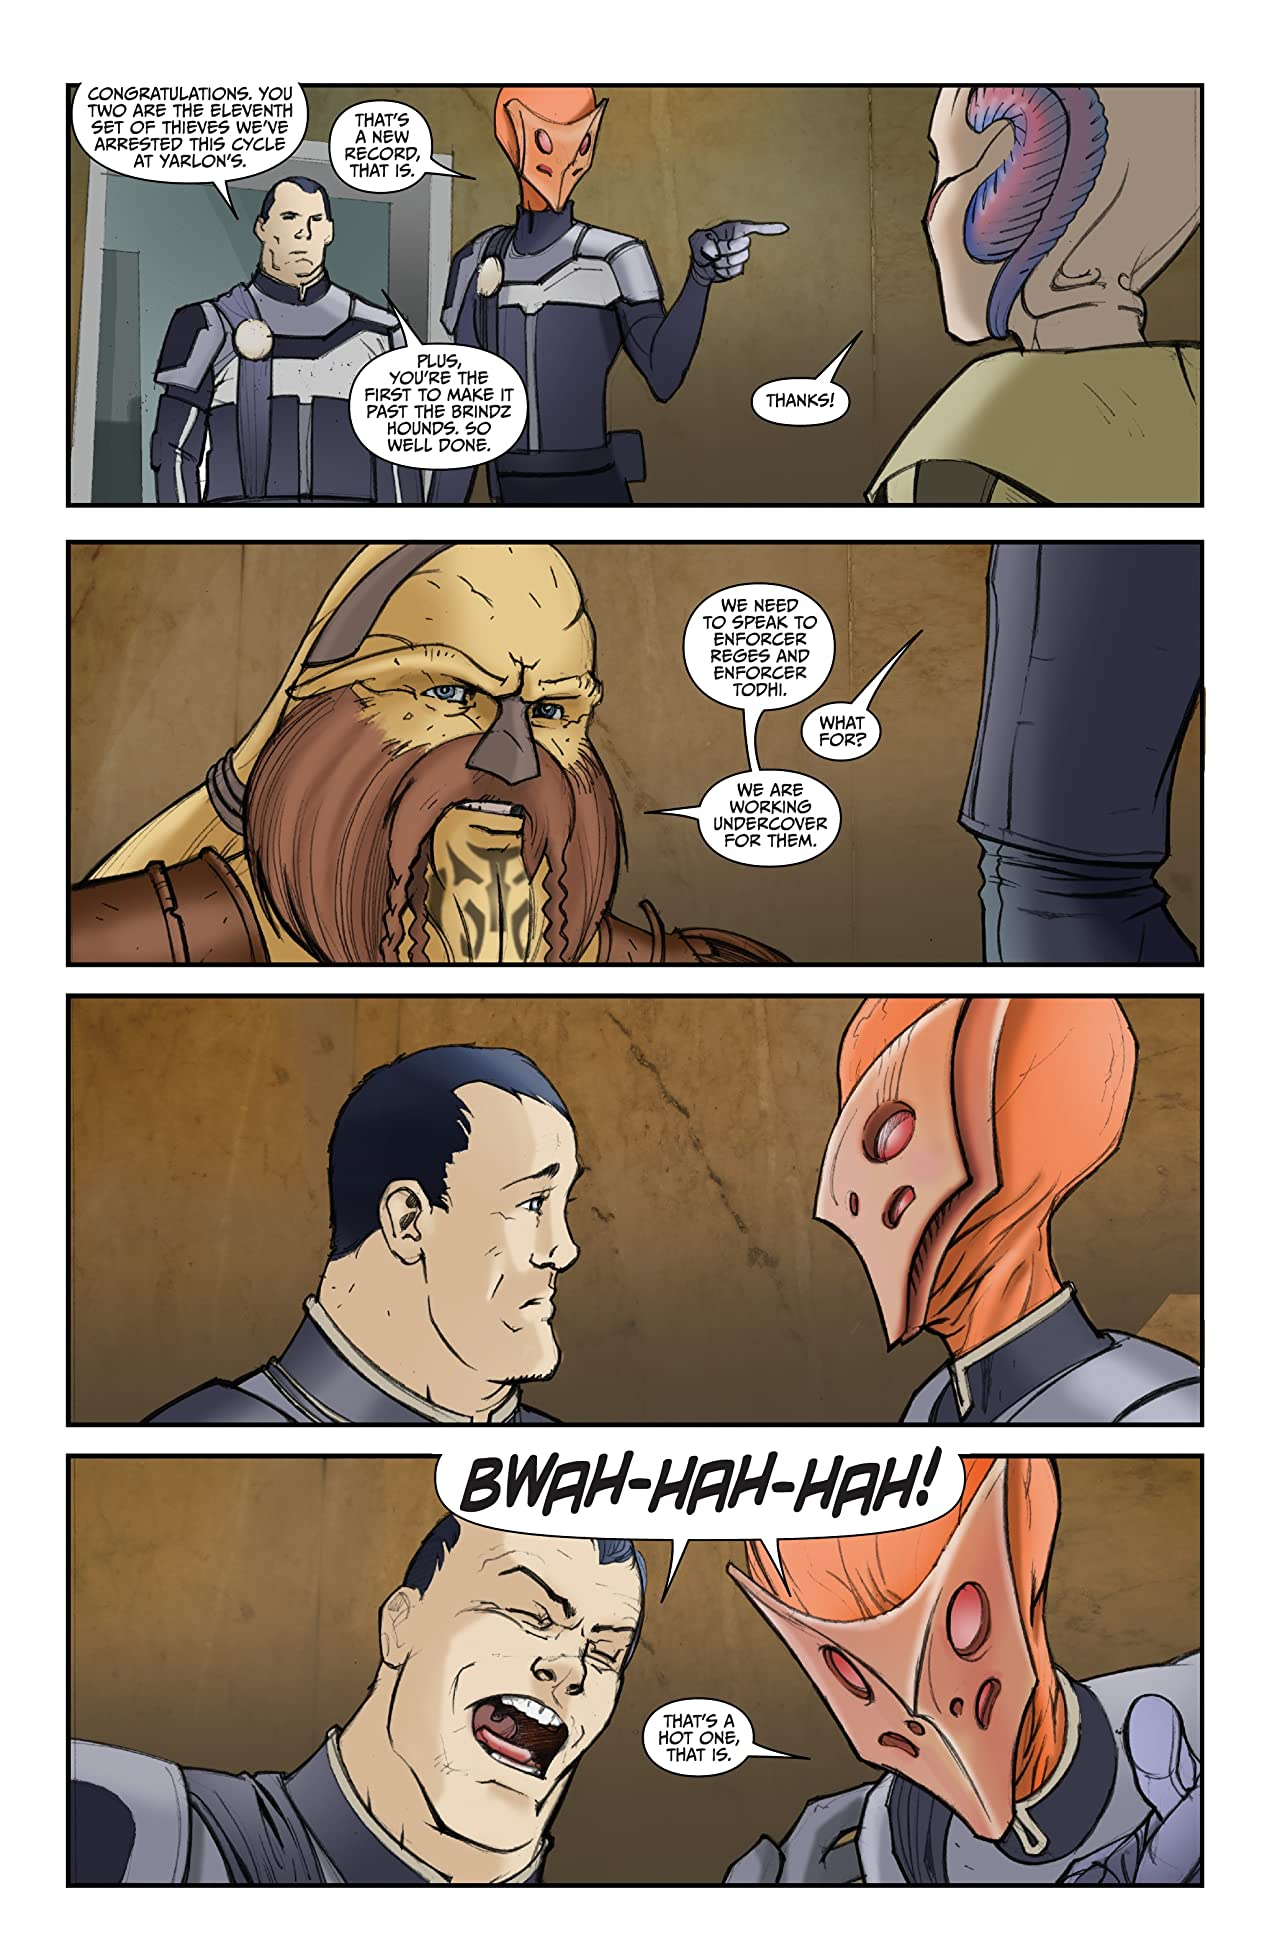 Farscape: Uncharted Tales Vol. 3: D'Argo's Quest #4 (of 4)